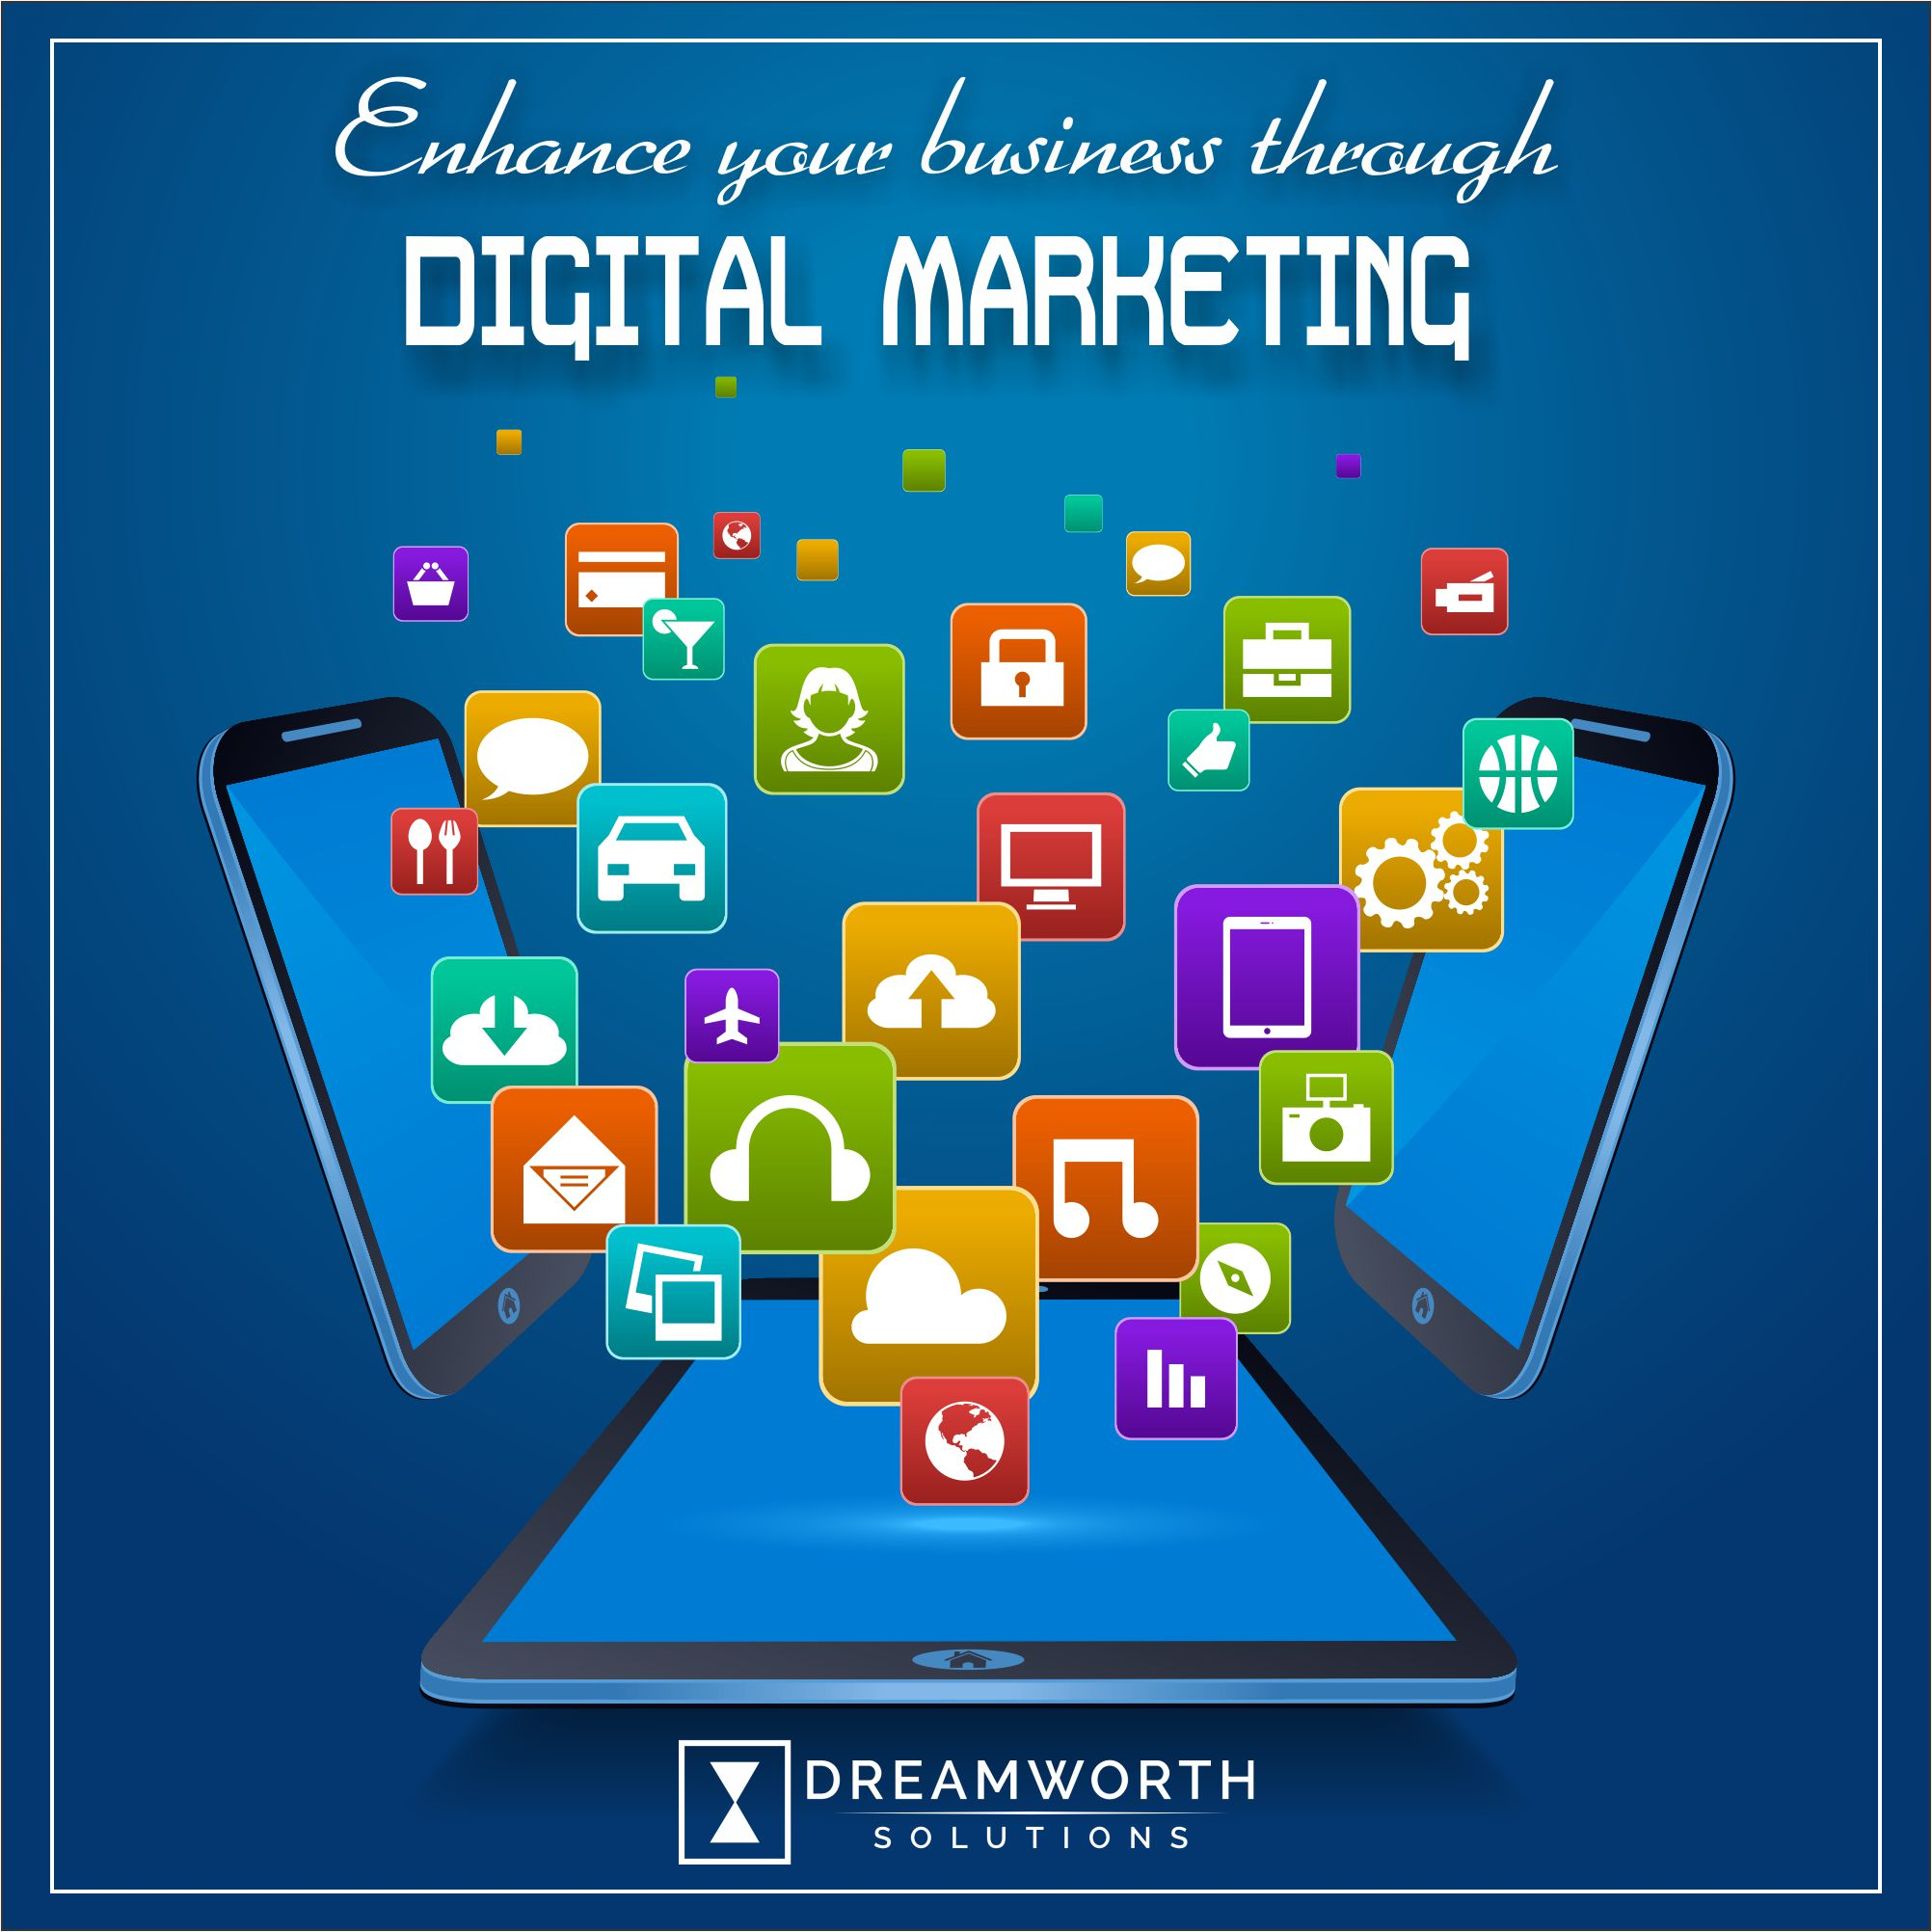 we offer innovative digital marketing solutions